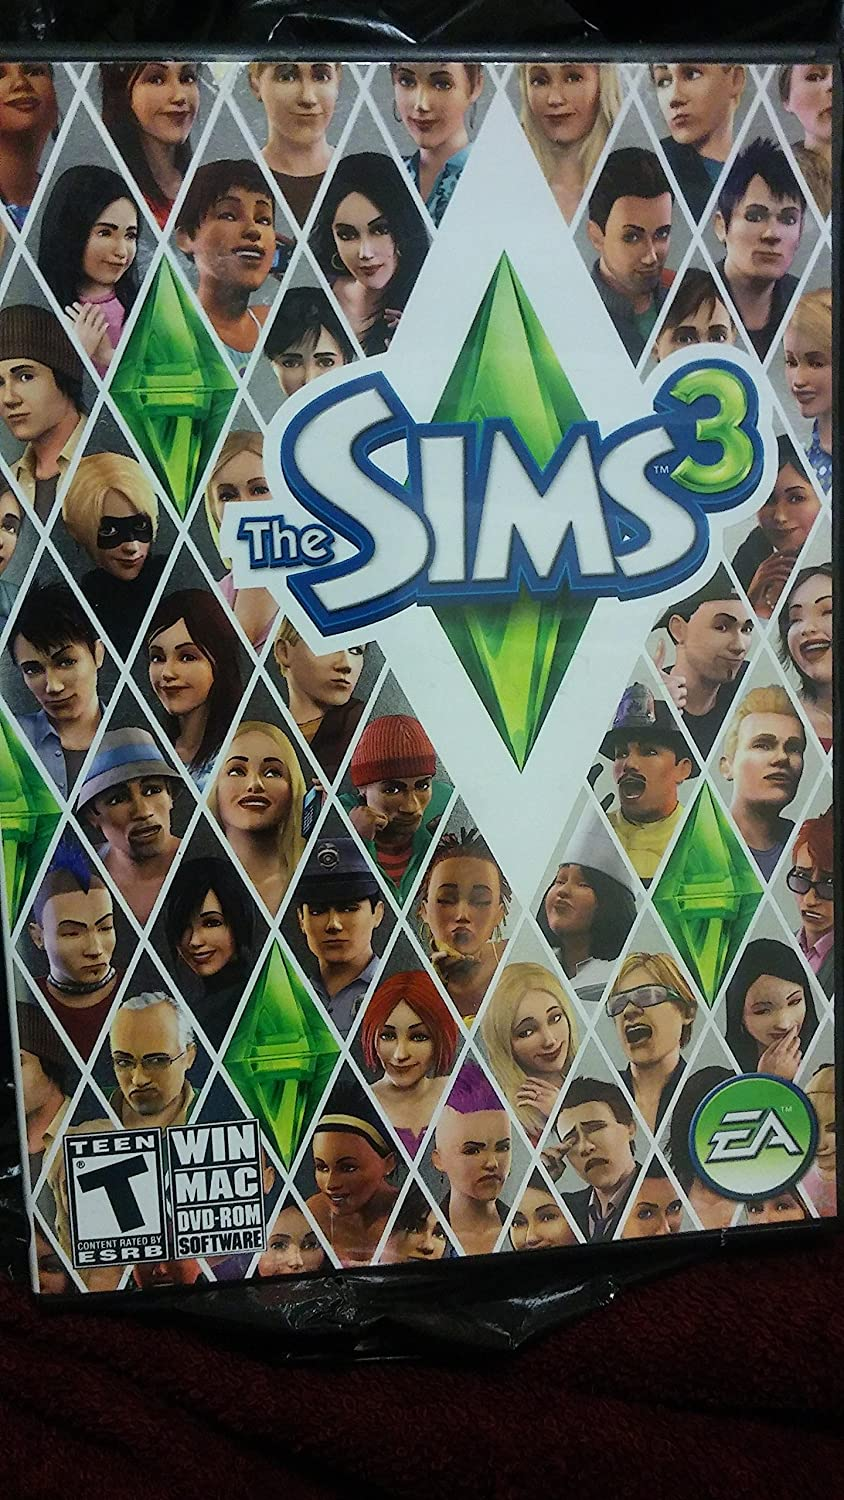 NEW Sims 3 PC WIN MAC Videogame Software